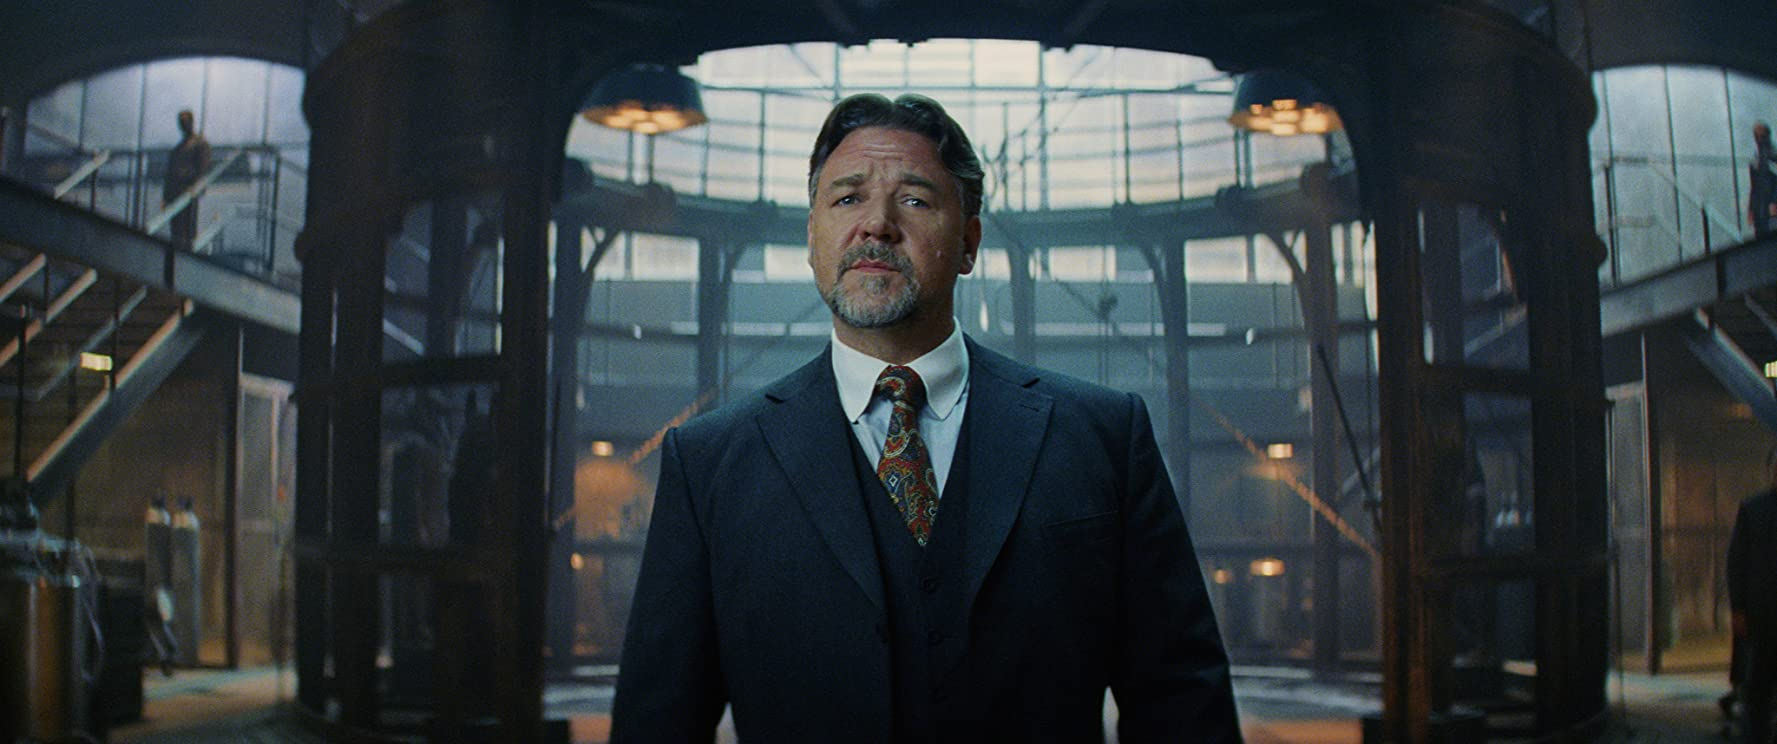 Russell Crowe in The Mummy (2017)